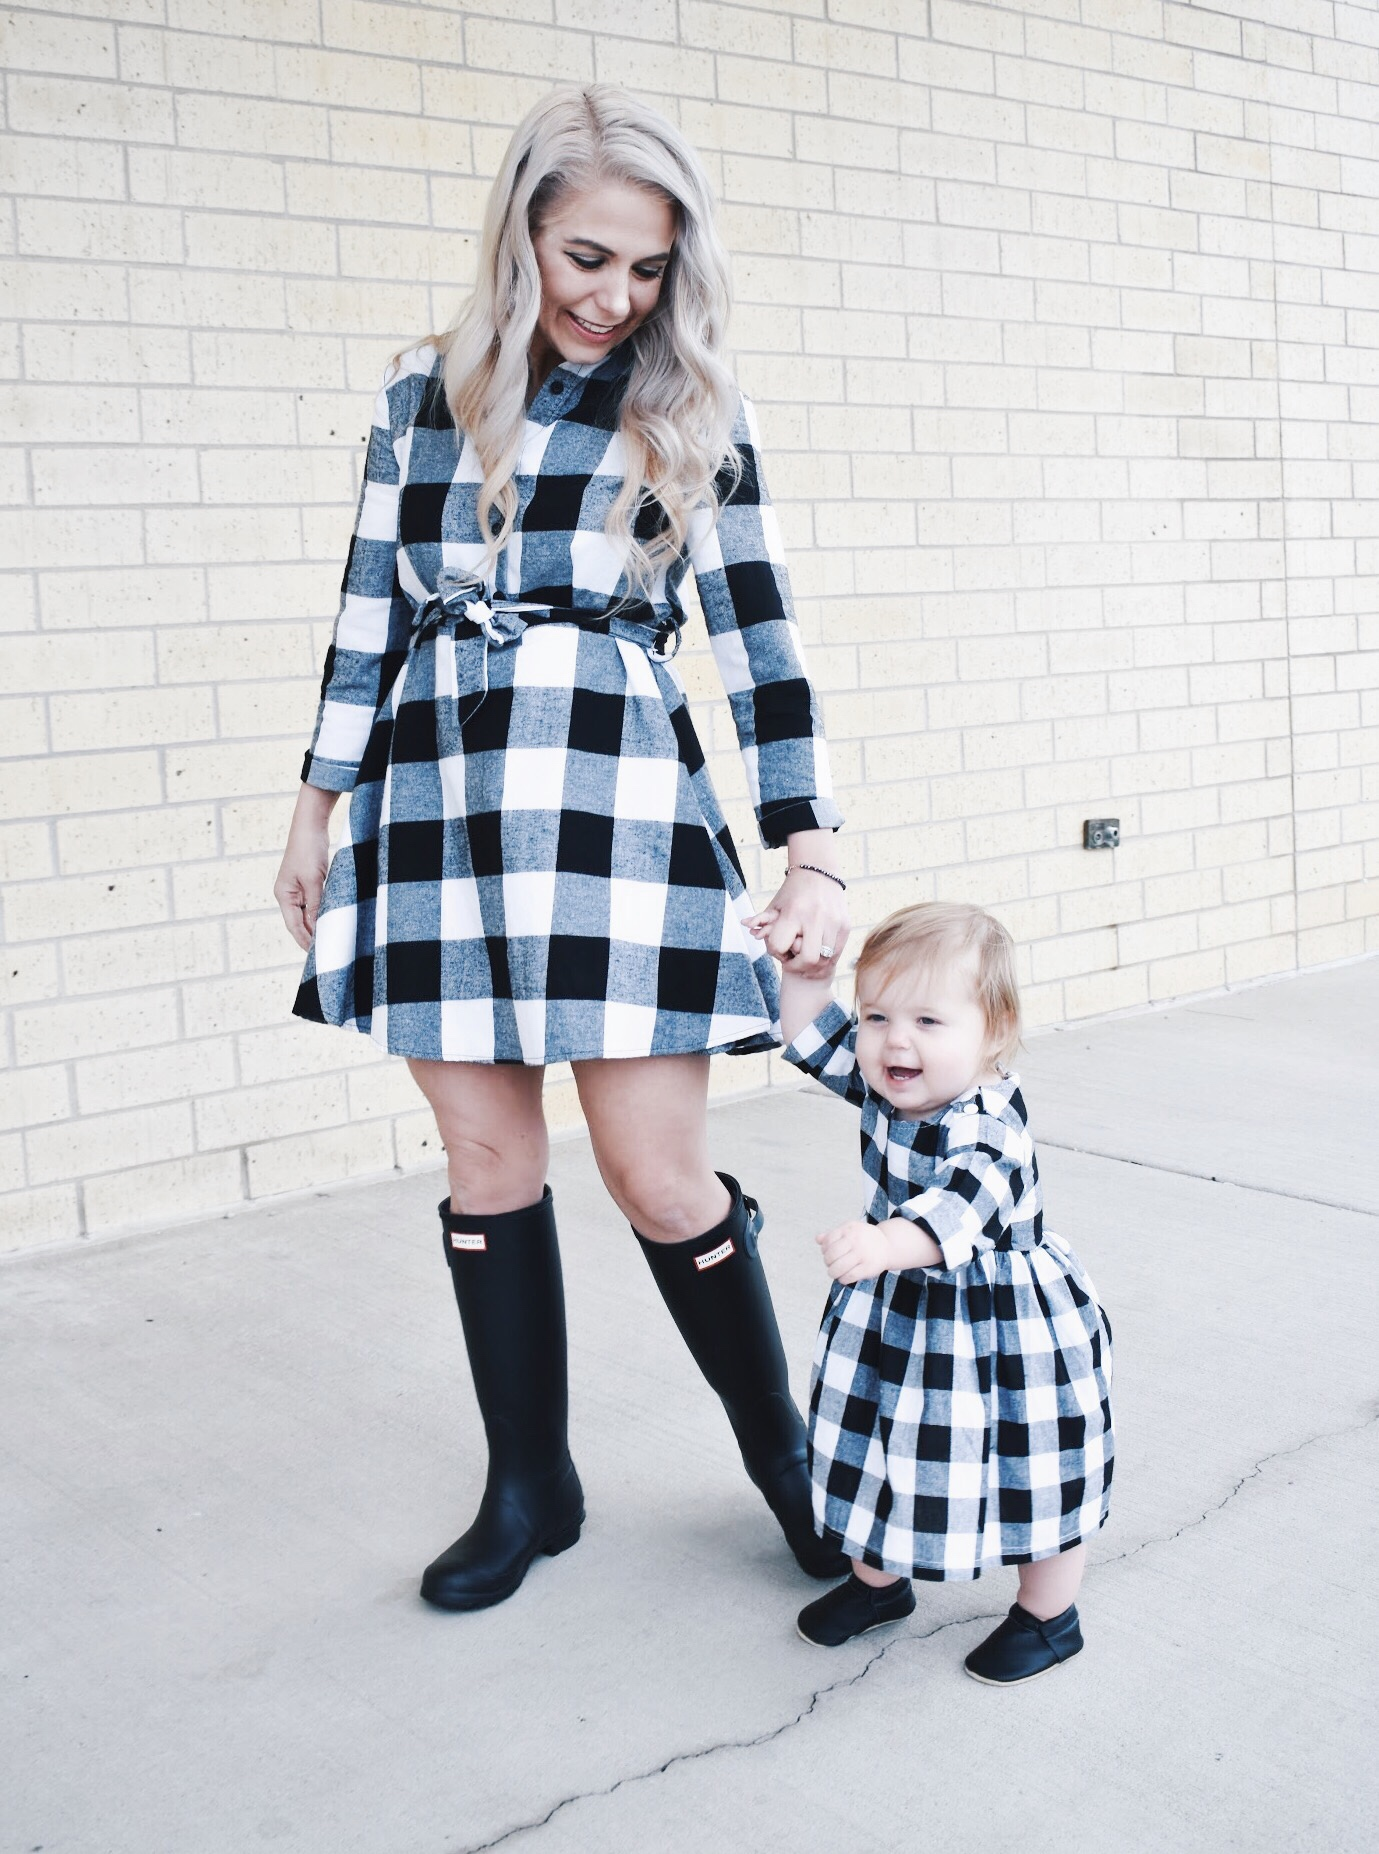 Mommy and Me Dresses - Fall Matching Clothes for Mommy and Daughter. These Mommy and Me plaid dresses are perfect for twinning with your mini me. Best of all, they're super affordable -- you can get both dresses for around $30 total! Perfect Mommy and Me outfit inspo from fashion blogger Tricia Nibarger of COVET by tricia, showcasing plaid dresses for Mom and Daughter. #MommyandMe #GirlMom #LikeTKit